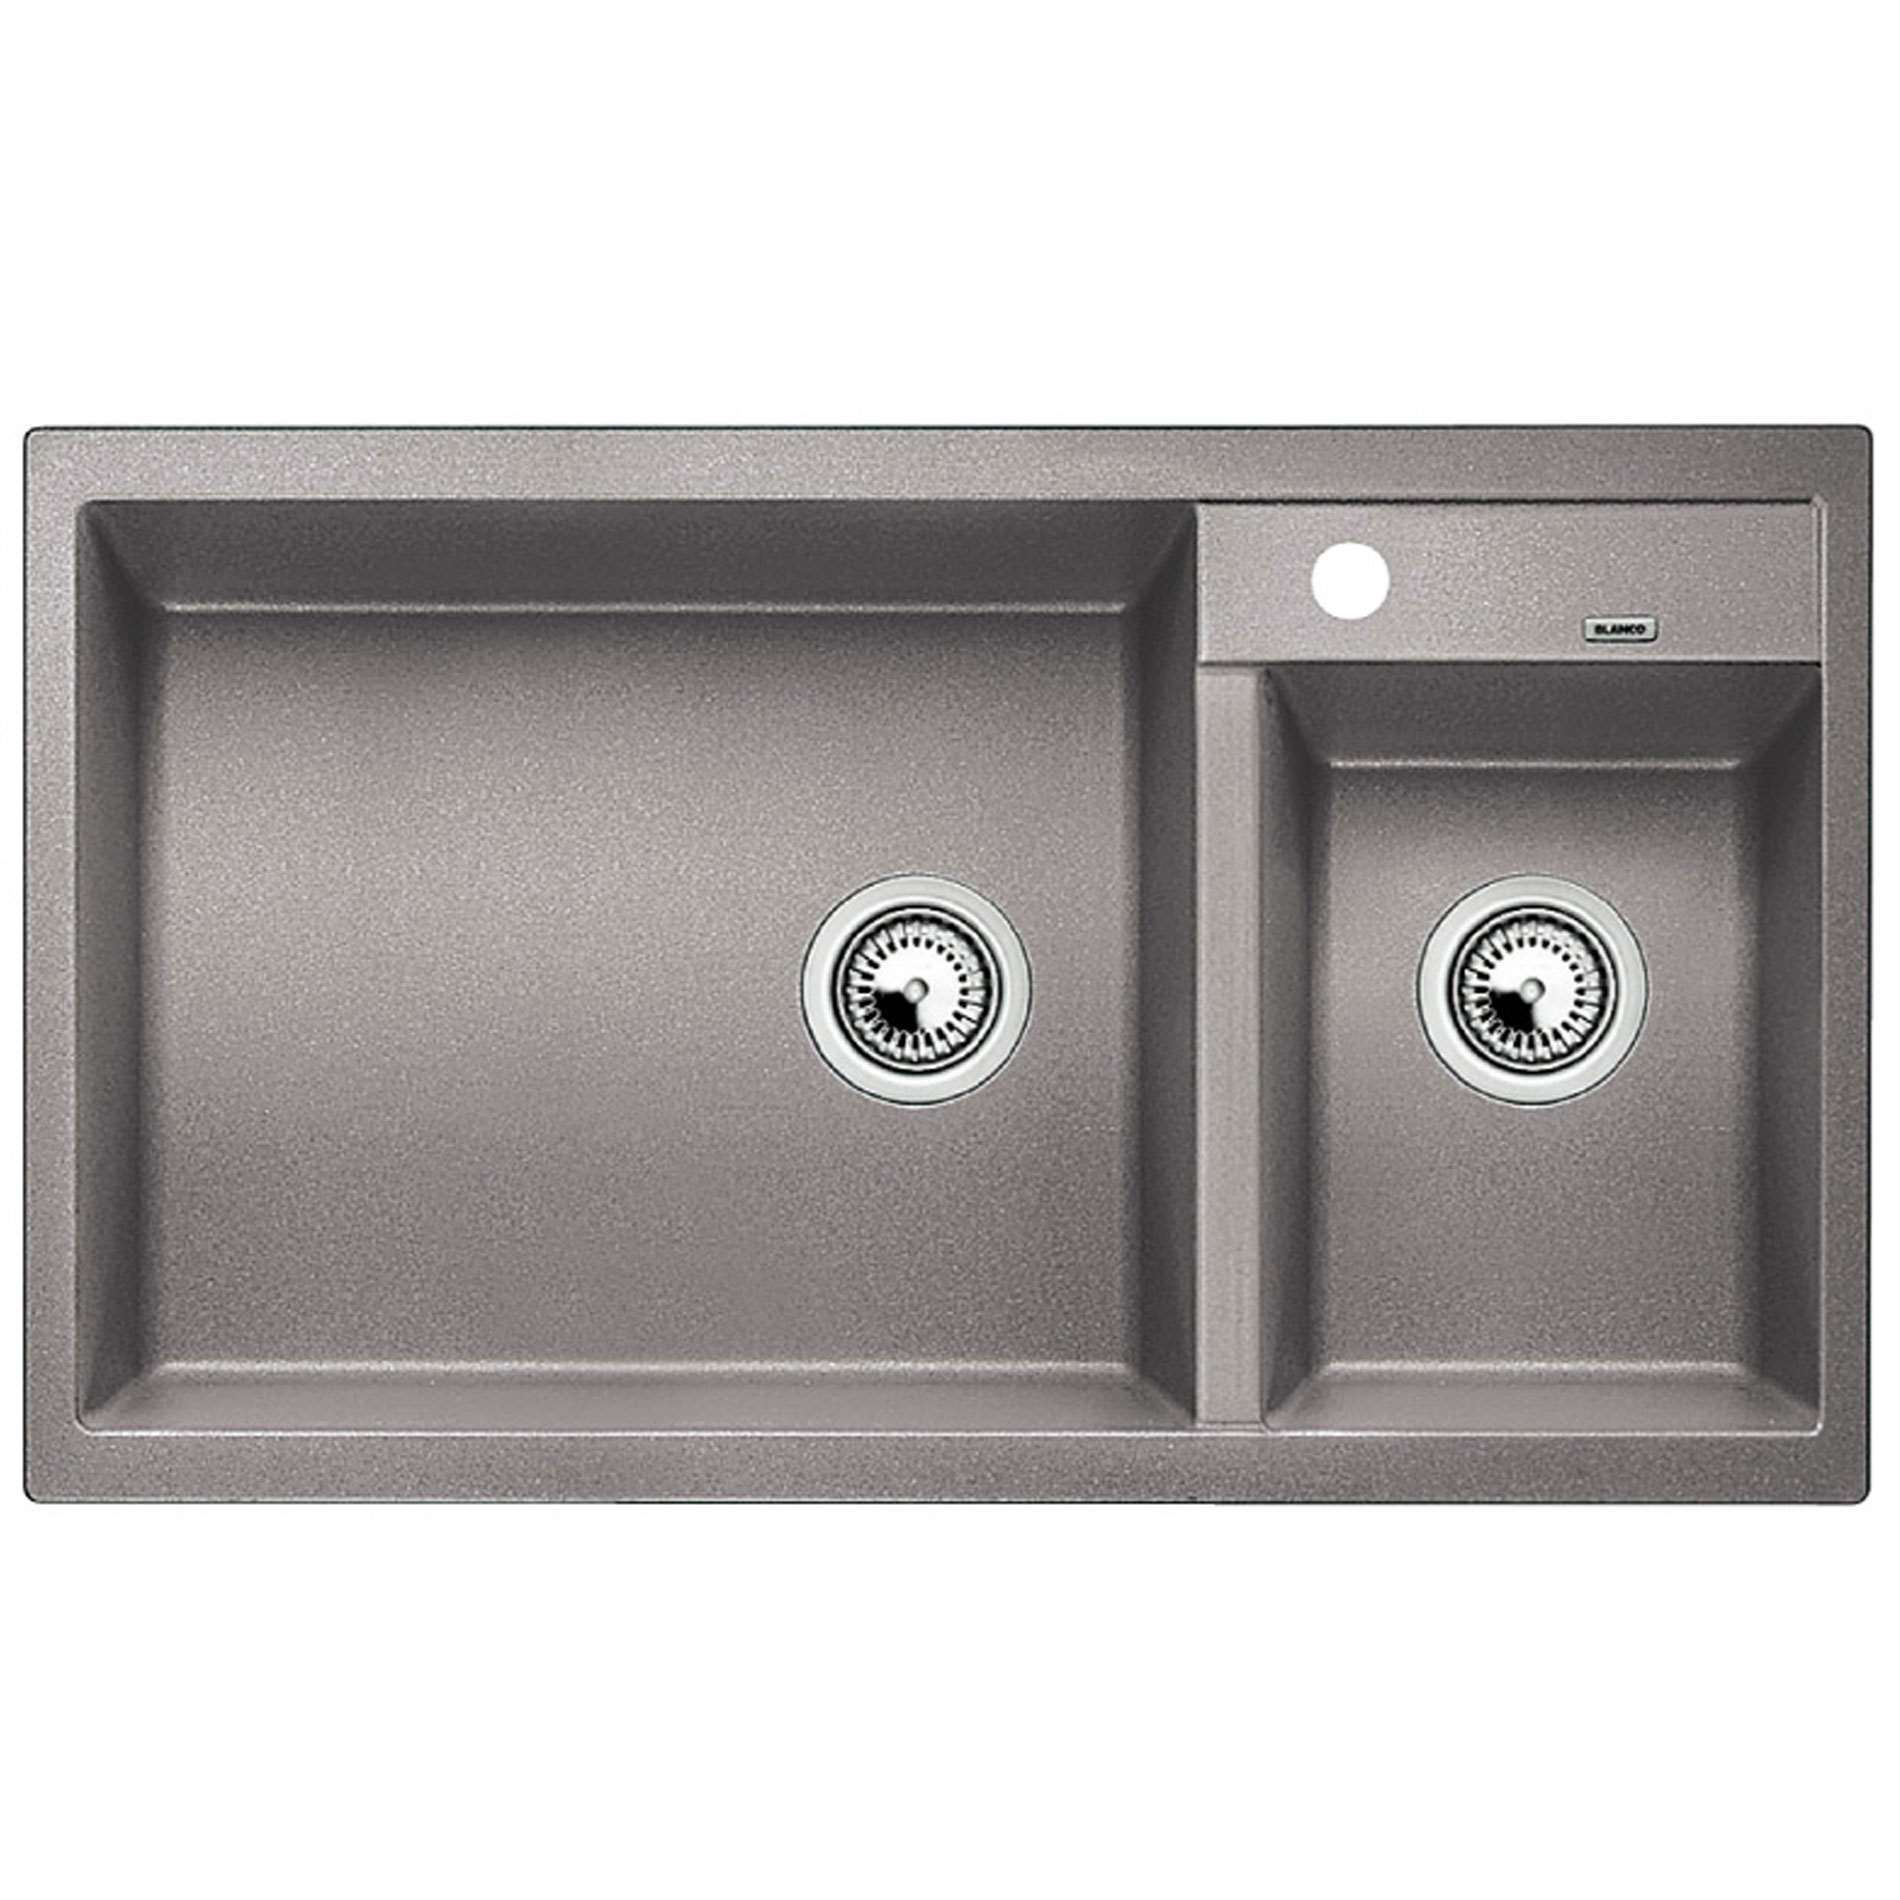 Blanco: Metra 9 Alumetallic Silgranit Sink - Kitchen Sinks & Taps